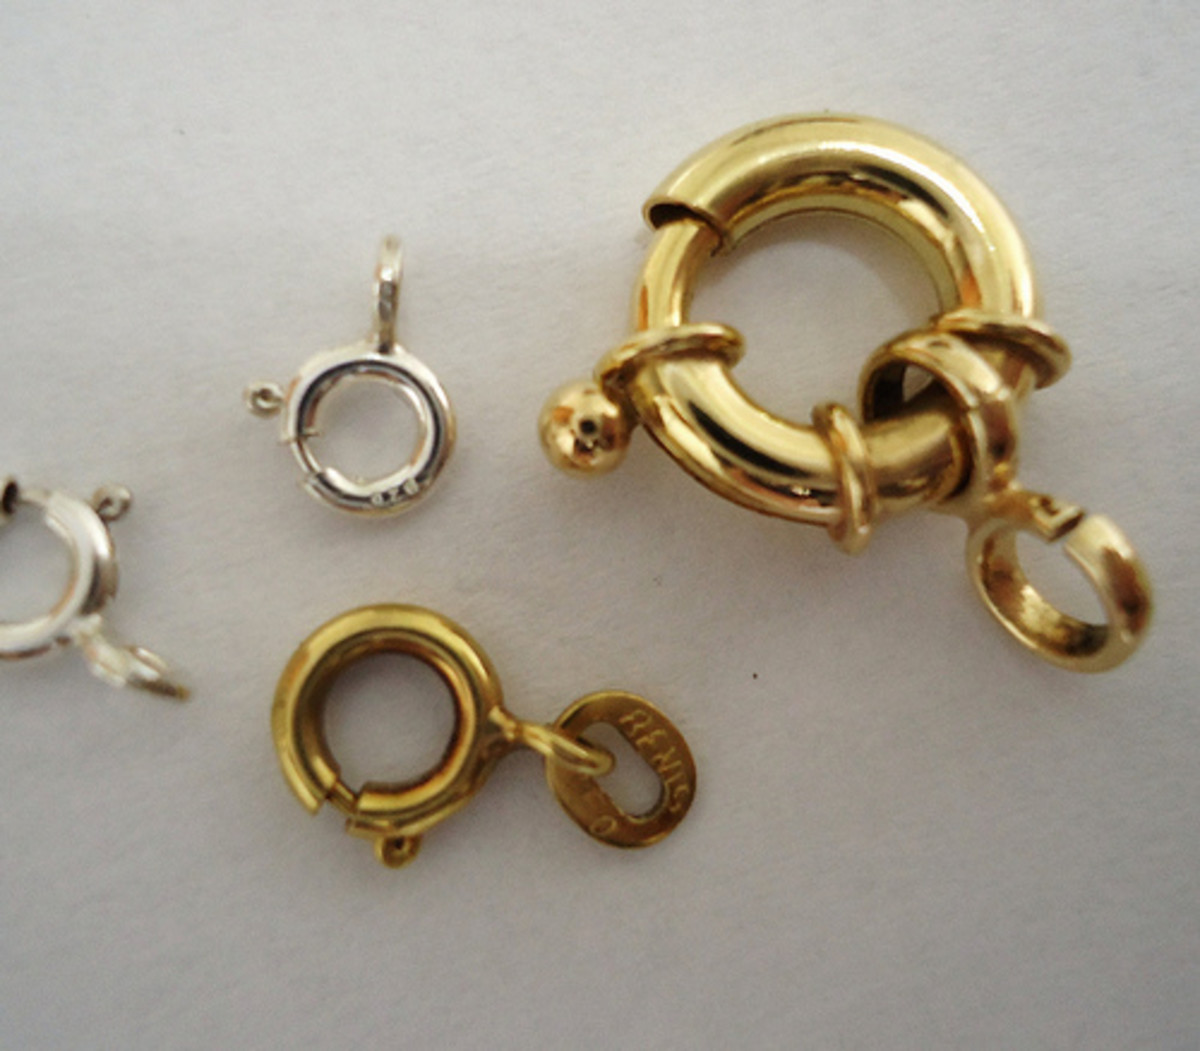 jewelry-clasps-comprehensive-list-with-resources